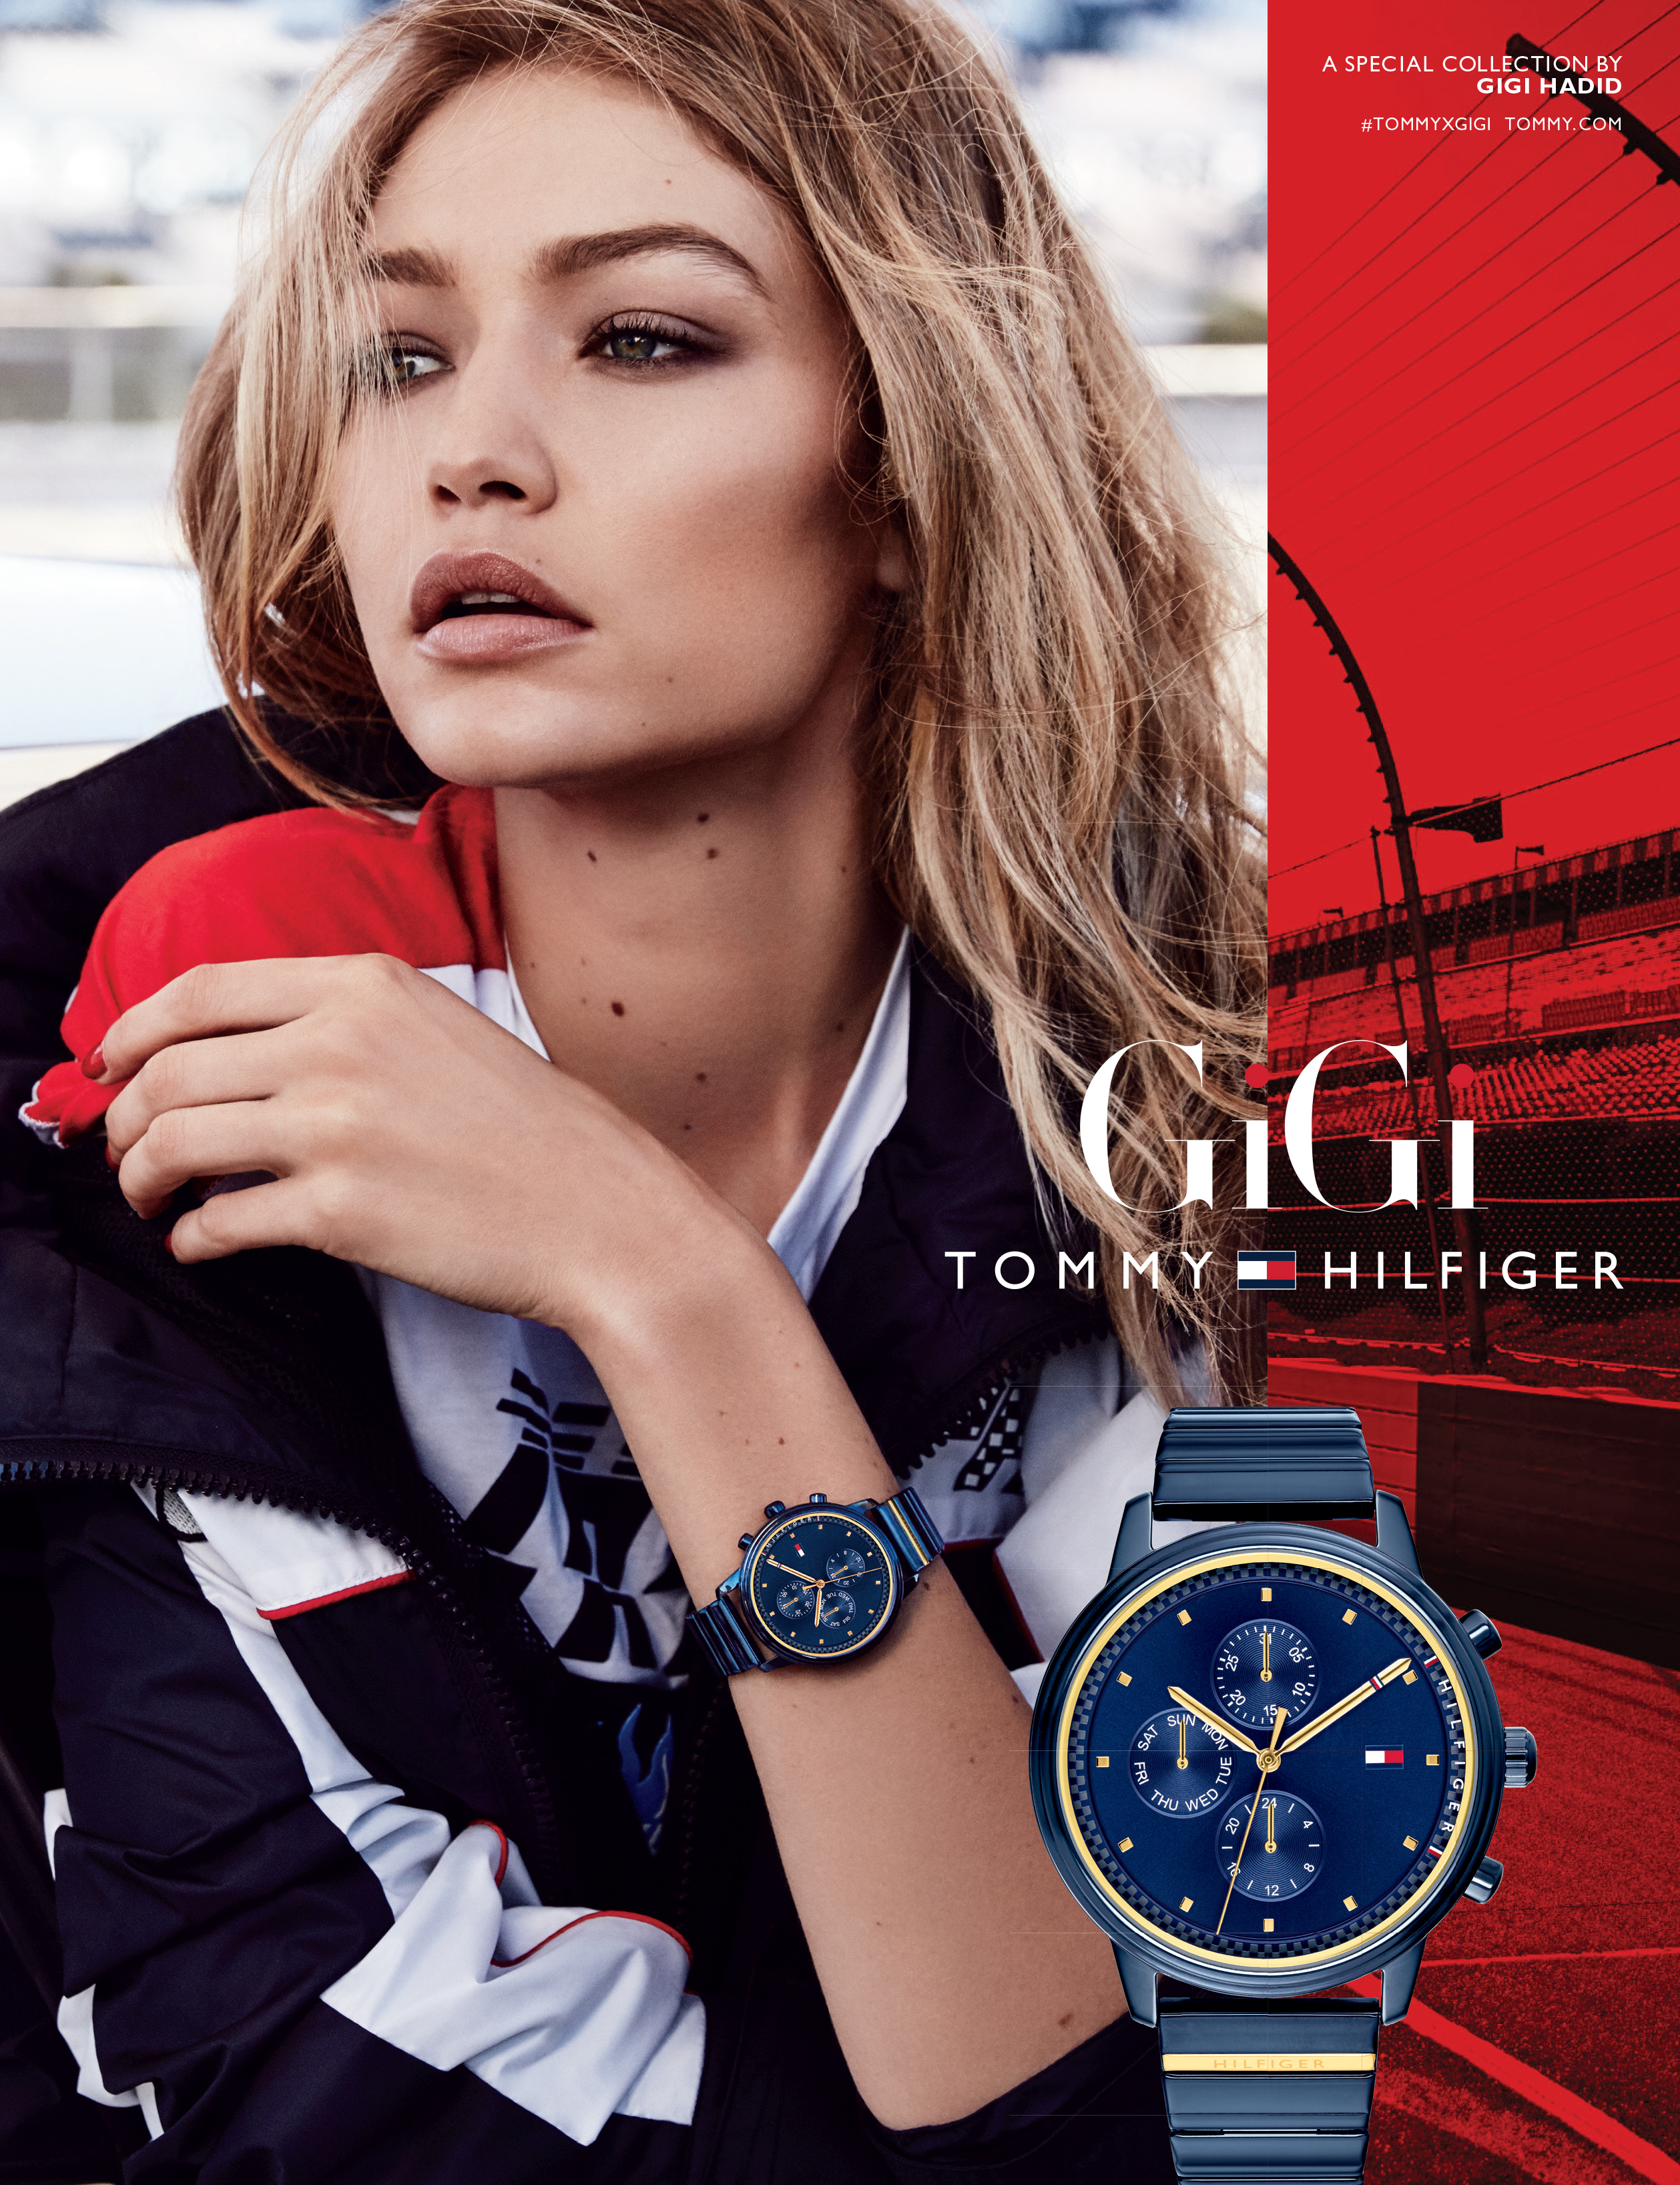 b7c9401a3 Tommy Hilfiger Announces the Spring 2018 Gigi Hadid Watch of the Season |  Business Wire